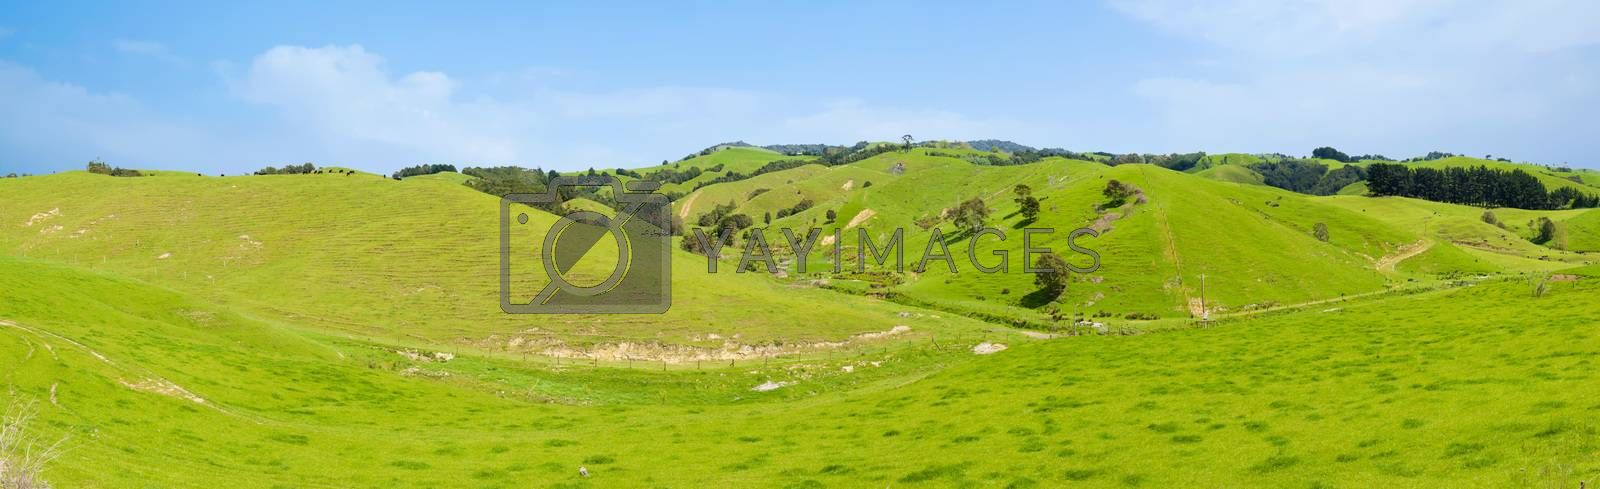 Common view in the New Zealand - hills covered by green grass. Panoramic photo